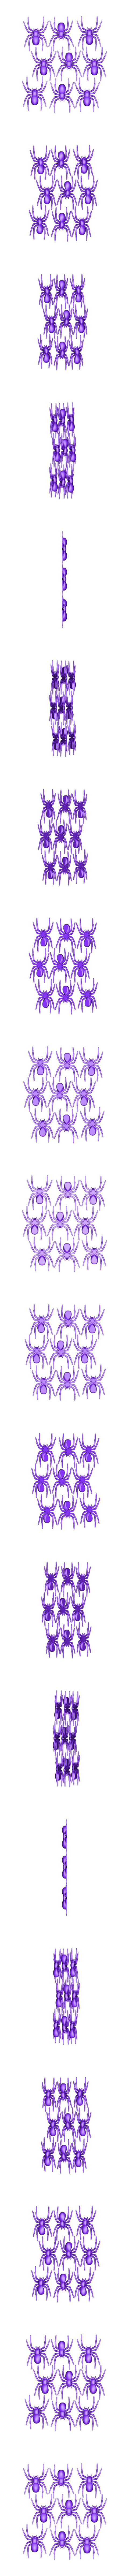 9Spiders.stl Download free STL file House Spider Fixed • 3D printer template, Gophy